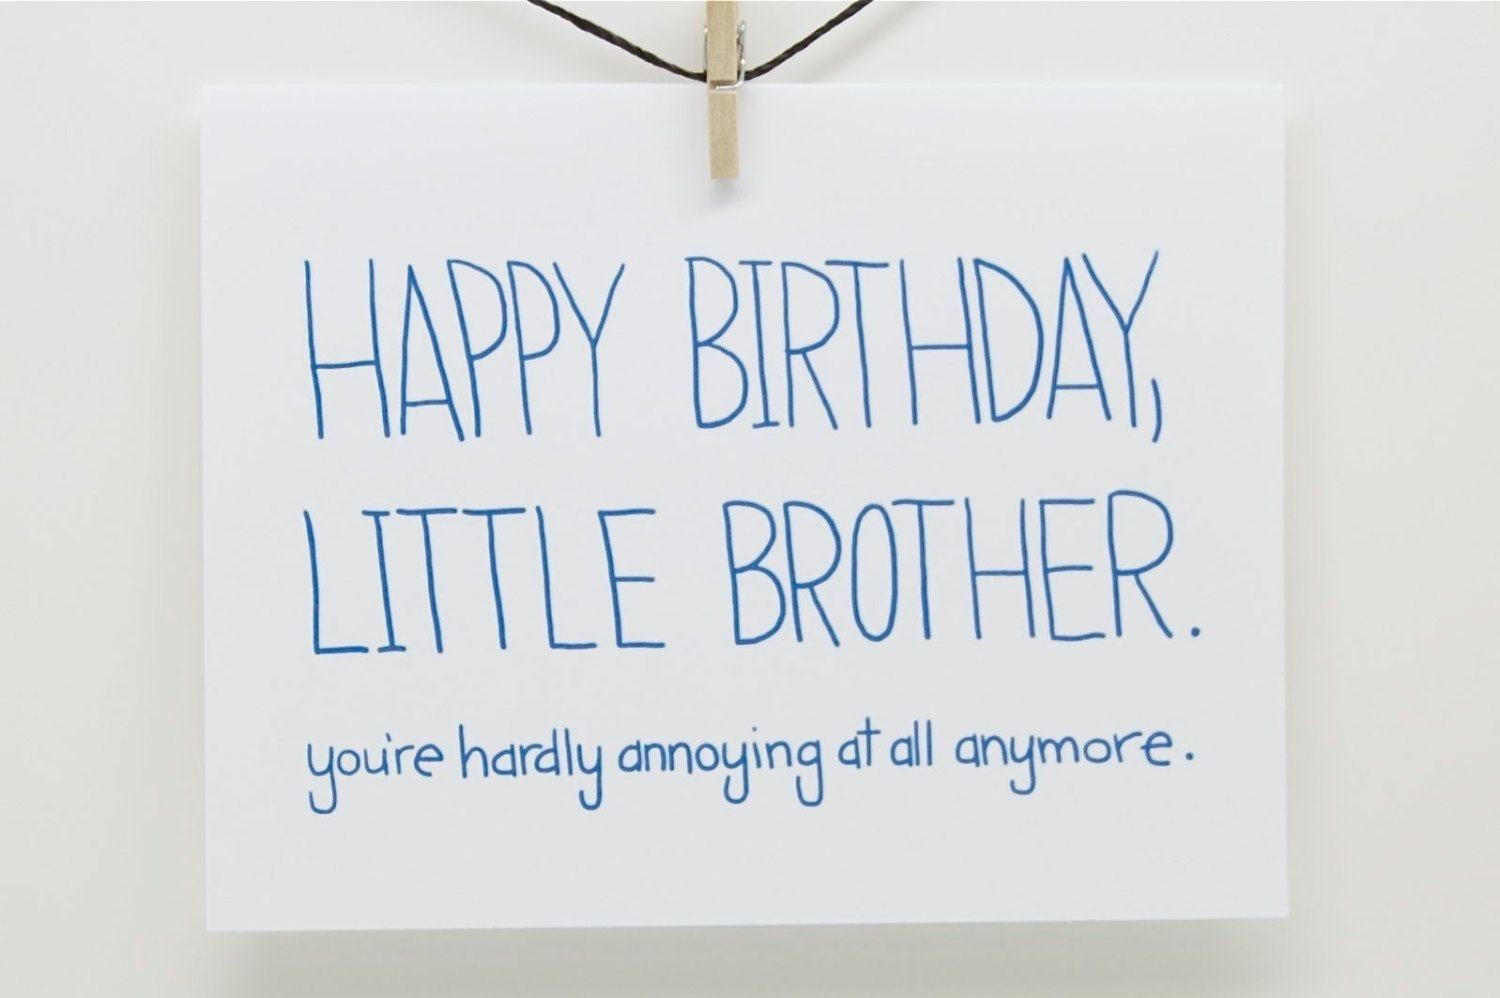 Funny Birthday Wishes For Younger Brother Intended For Ideas 2020